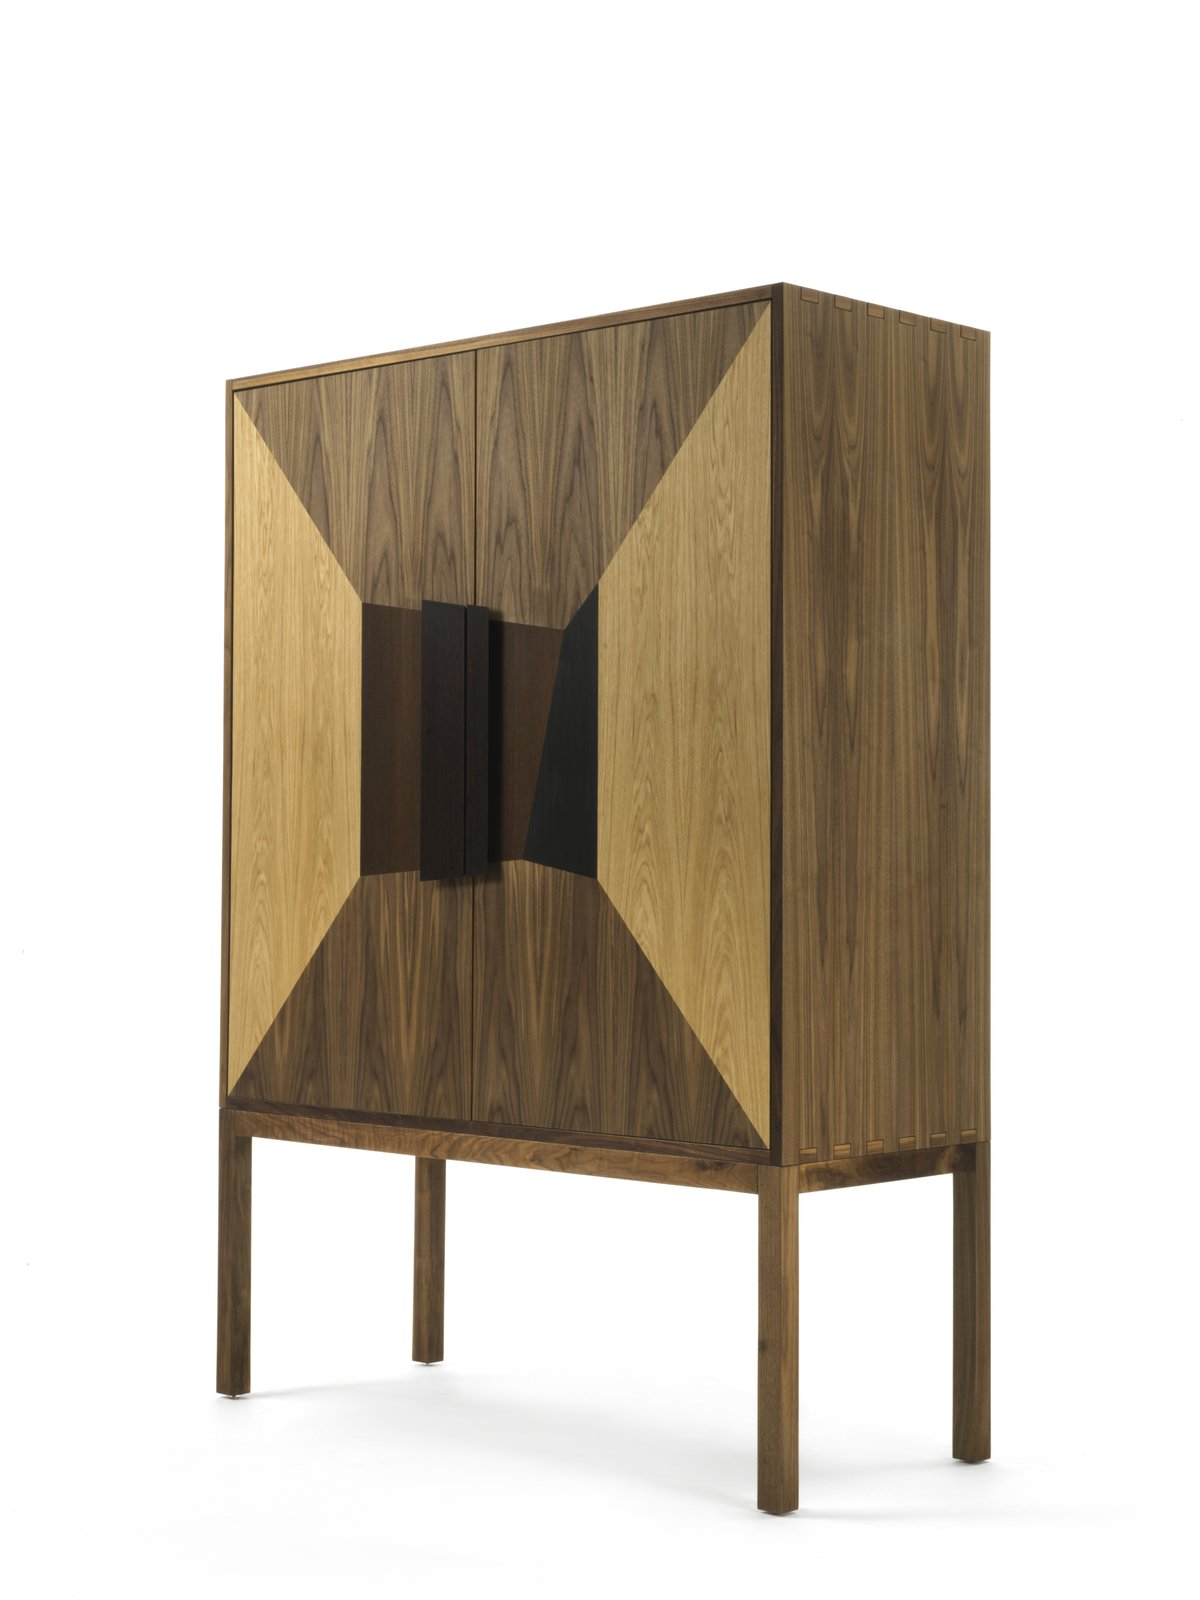 The DeKauri freestanding vanity credenza is made with 50,000-year-old Kauri wood.